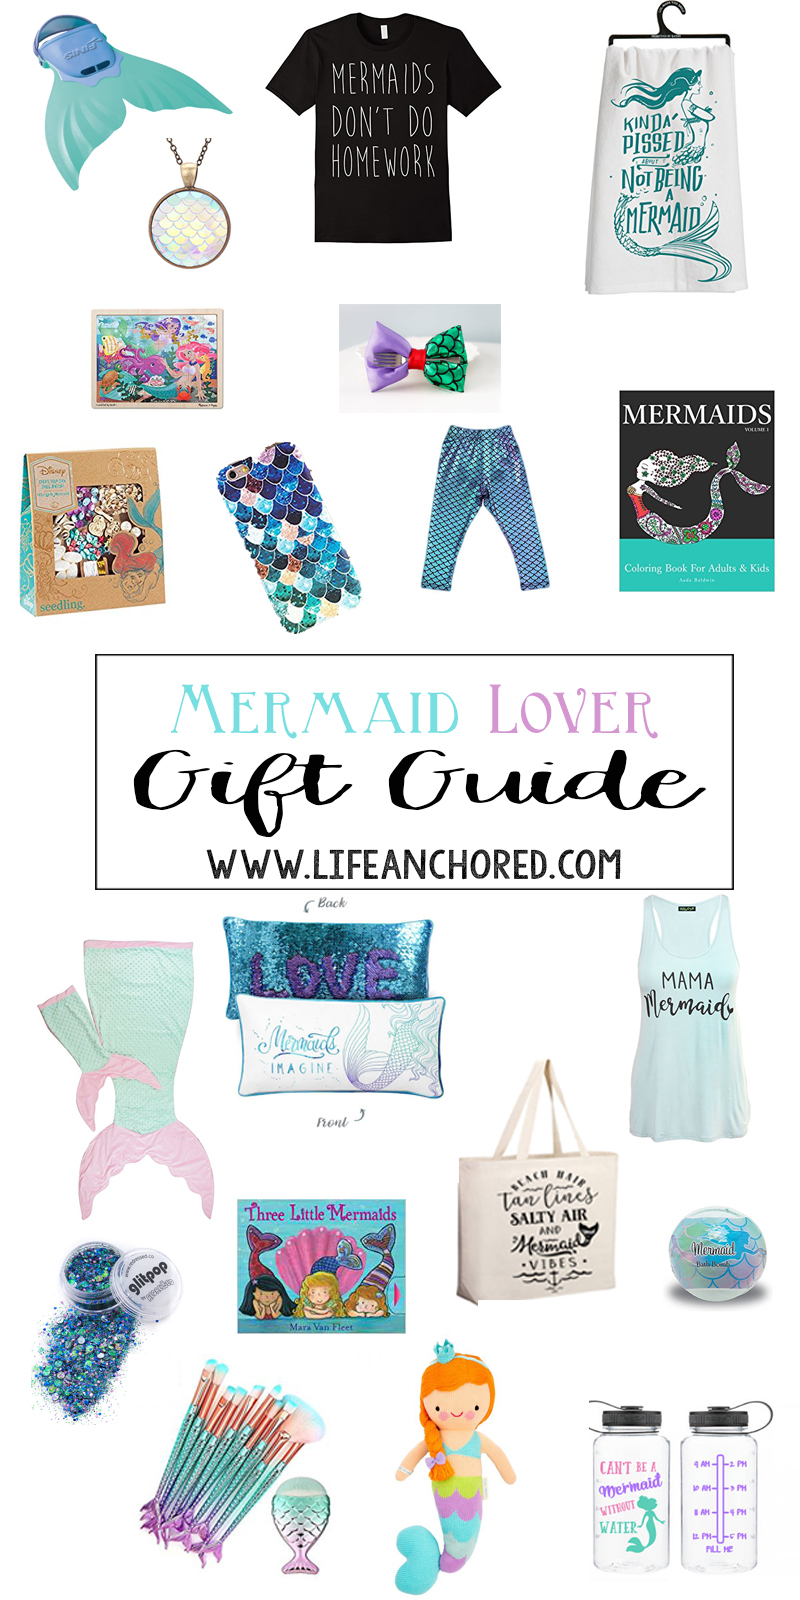 mermaid lover gift guide // Life Anchored